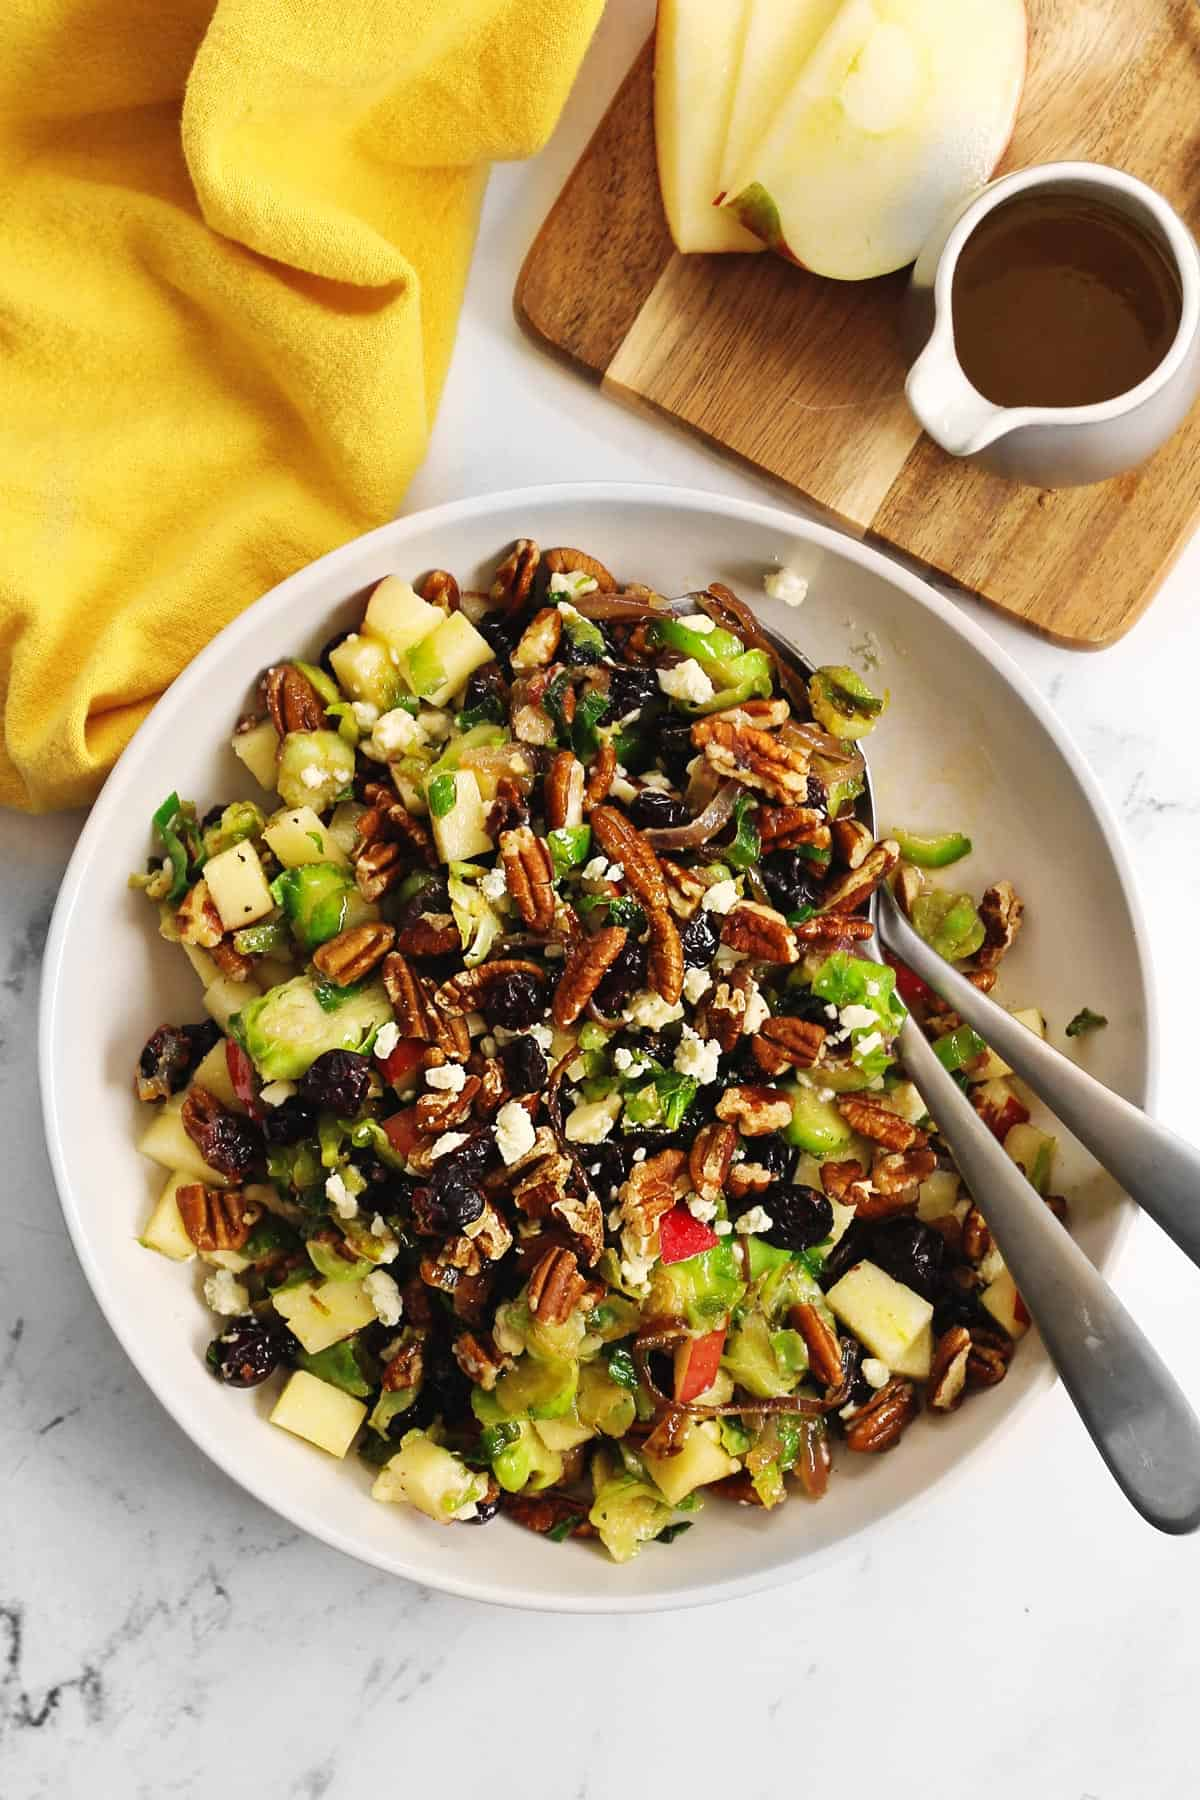 Shaved brussels sprout salad with two serving spoons